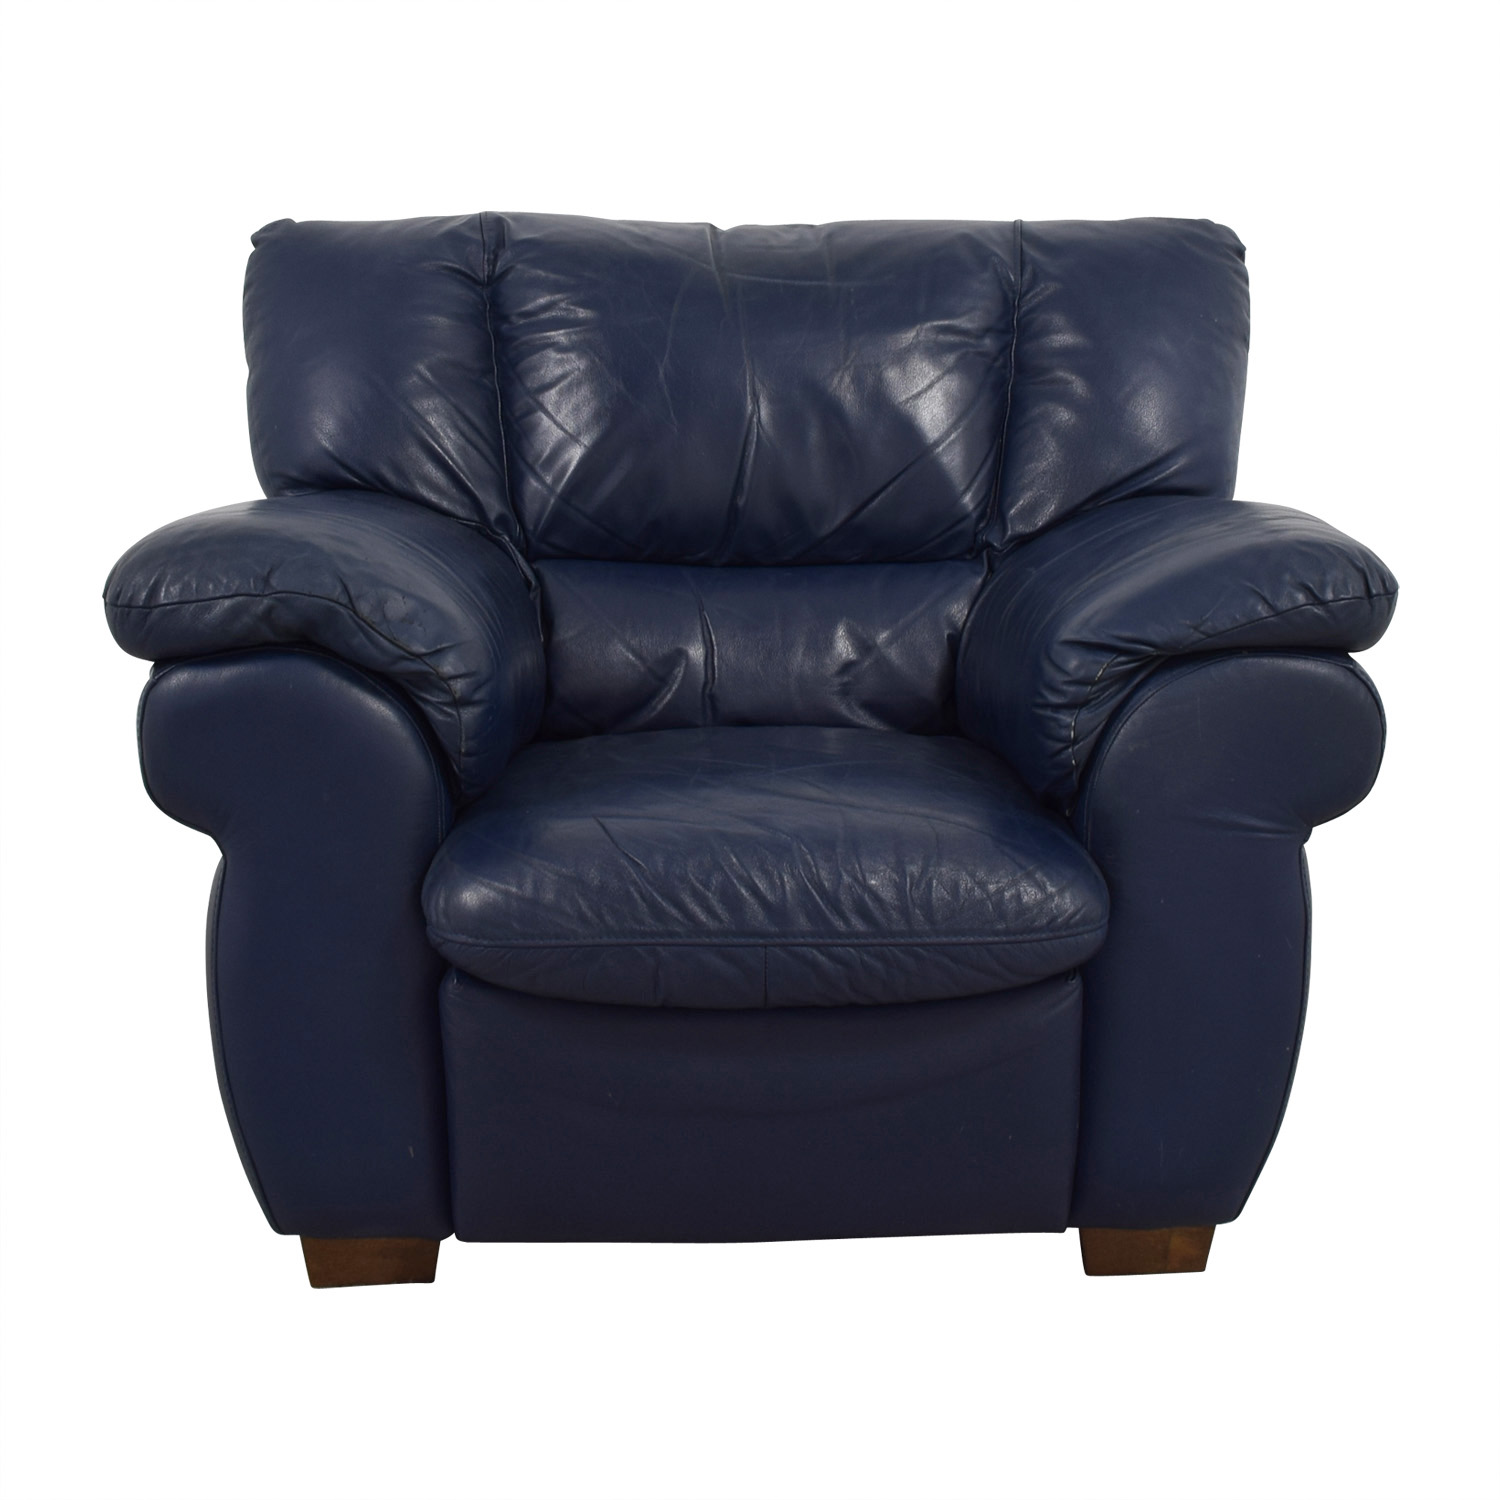 90% OFF - Macy\'s Macy\'s Navy Blue Leather Sofa Chair / Chairs